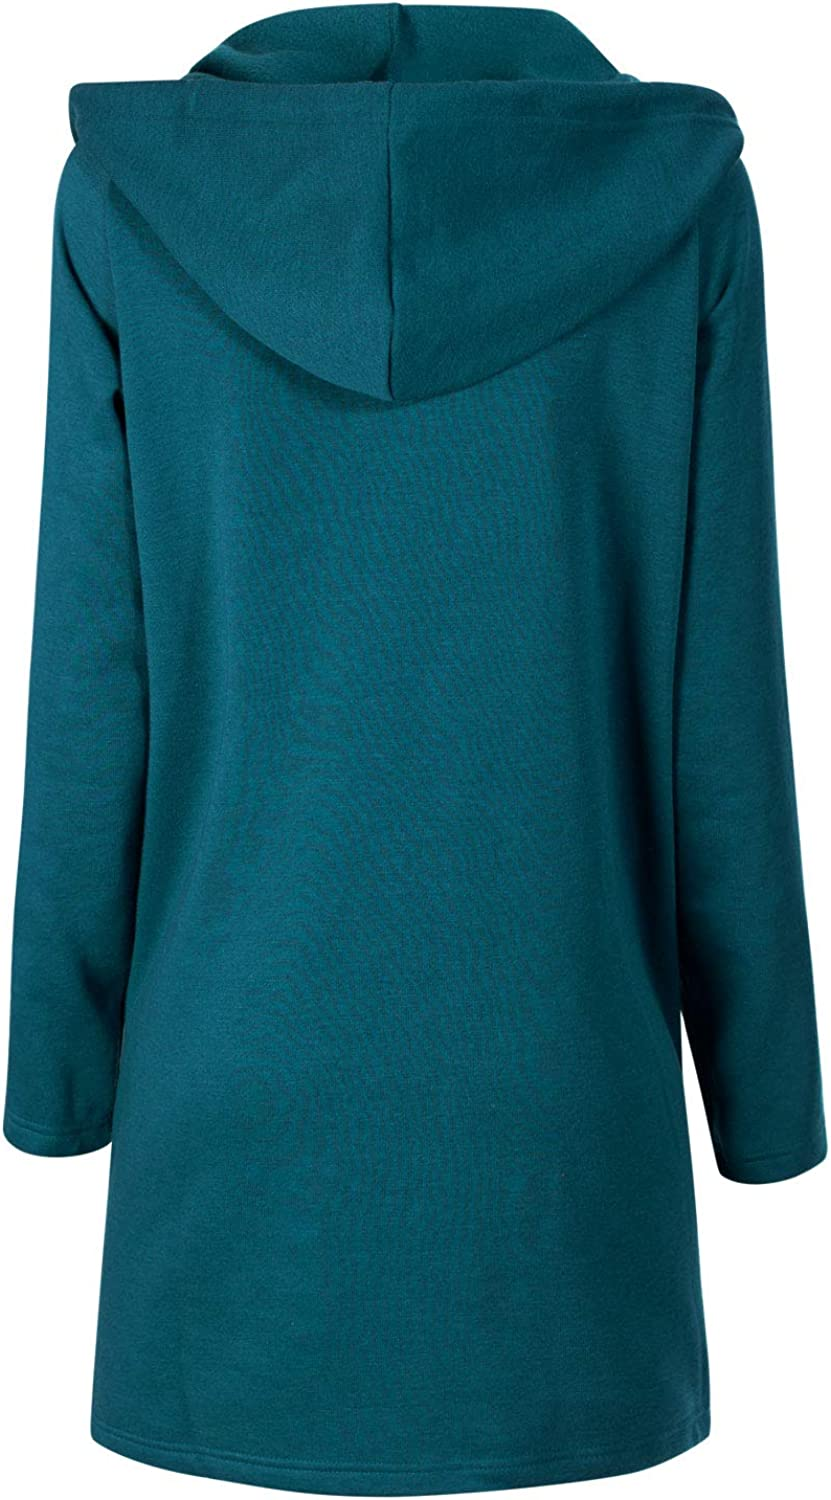 Design by Olivia Womens Casual Loose Fit Long Zip Up Pullover Hoodie Tunic Sweatshirt Jacket S-3X